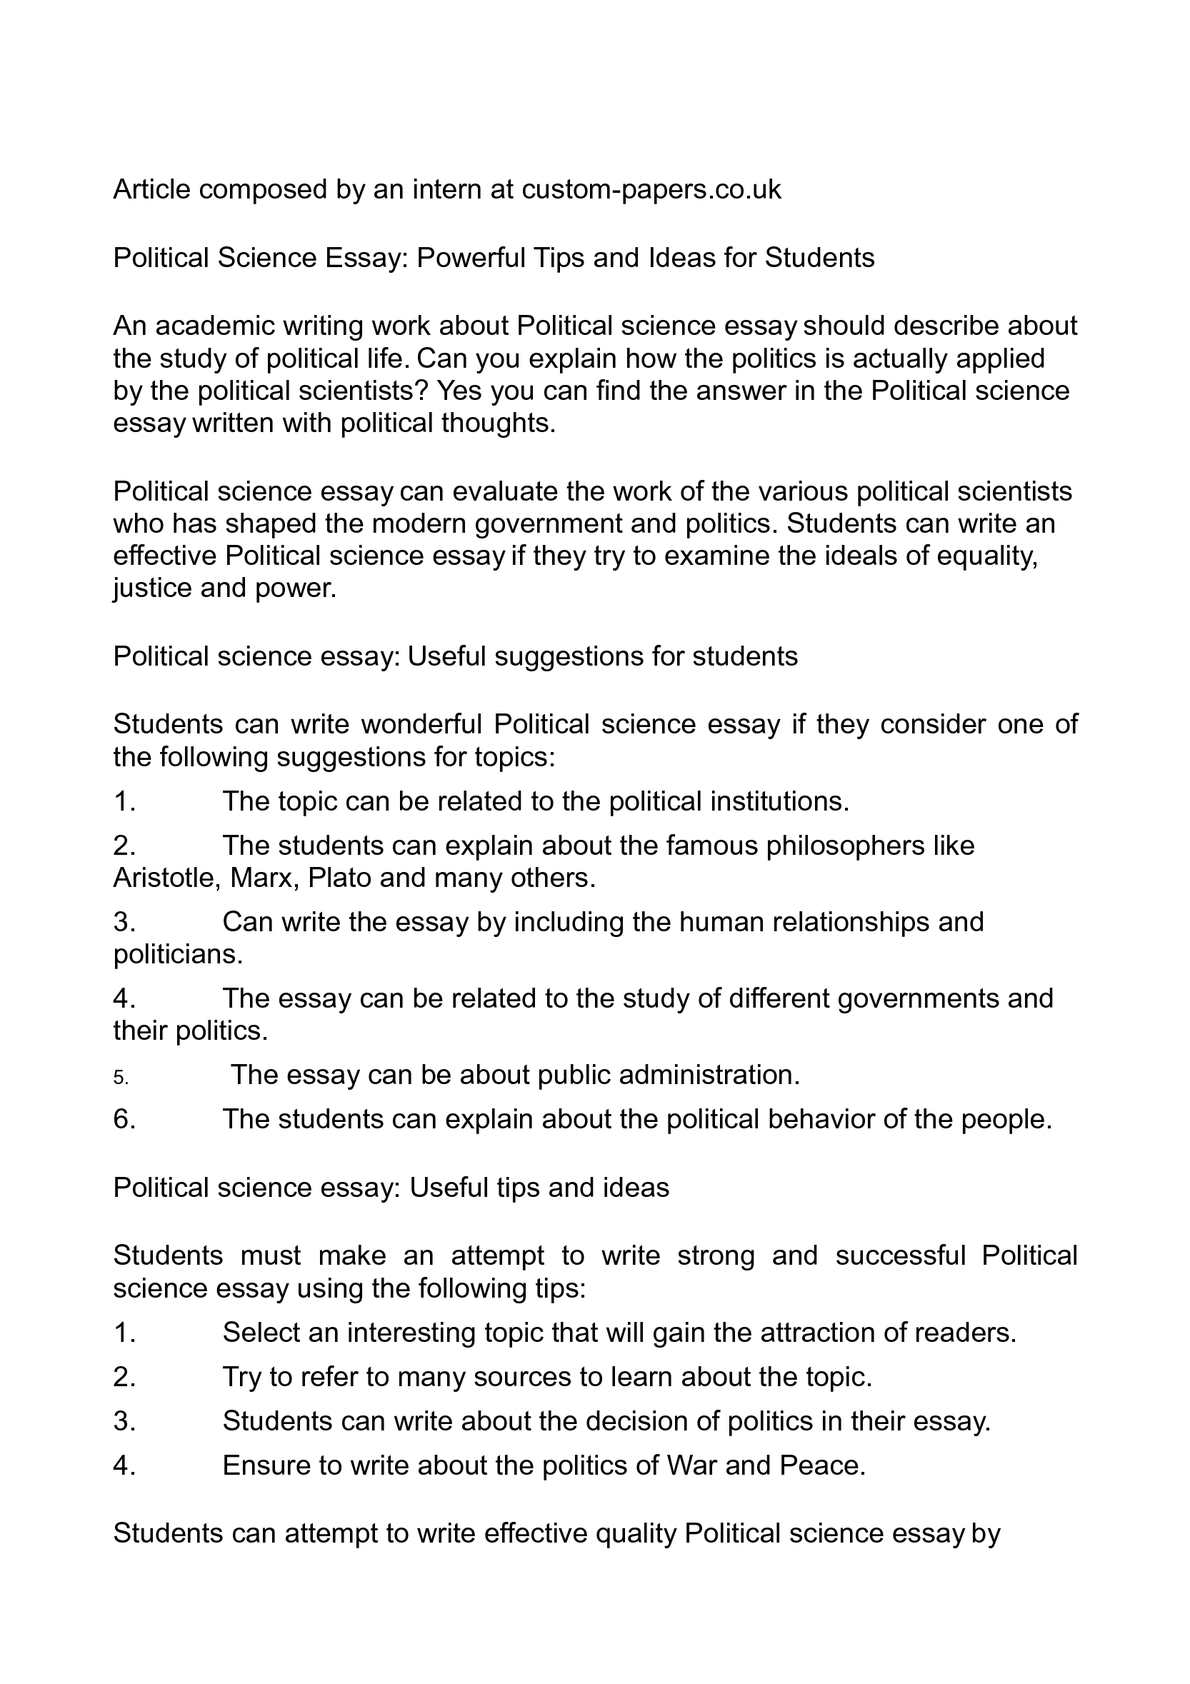 Calamo  Political Science Essay Powerful Tips And Ideas For Students Political Science Essay Powerful Tips And Ideas For Students